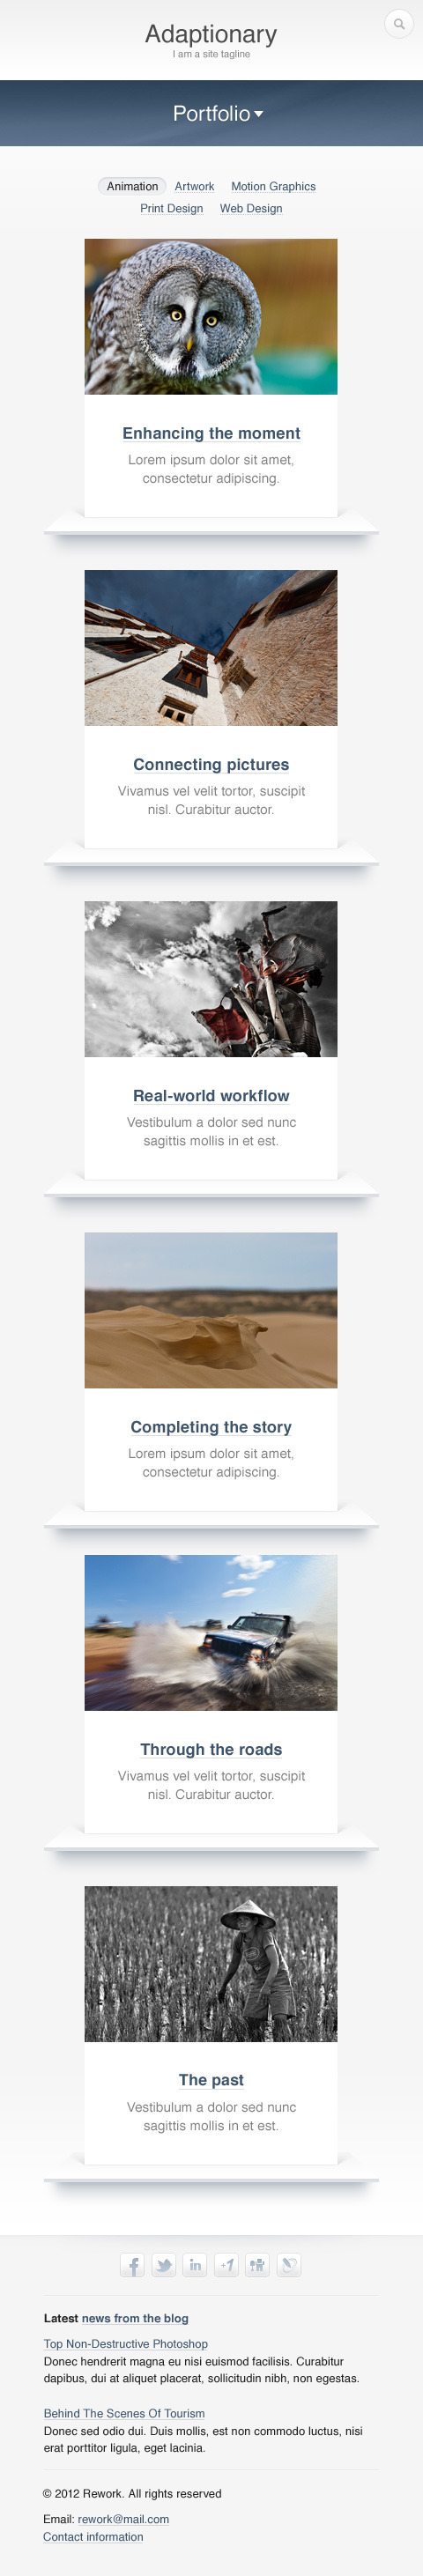 Adaptionary PSD Template